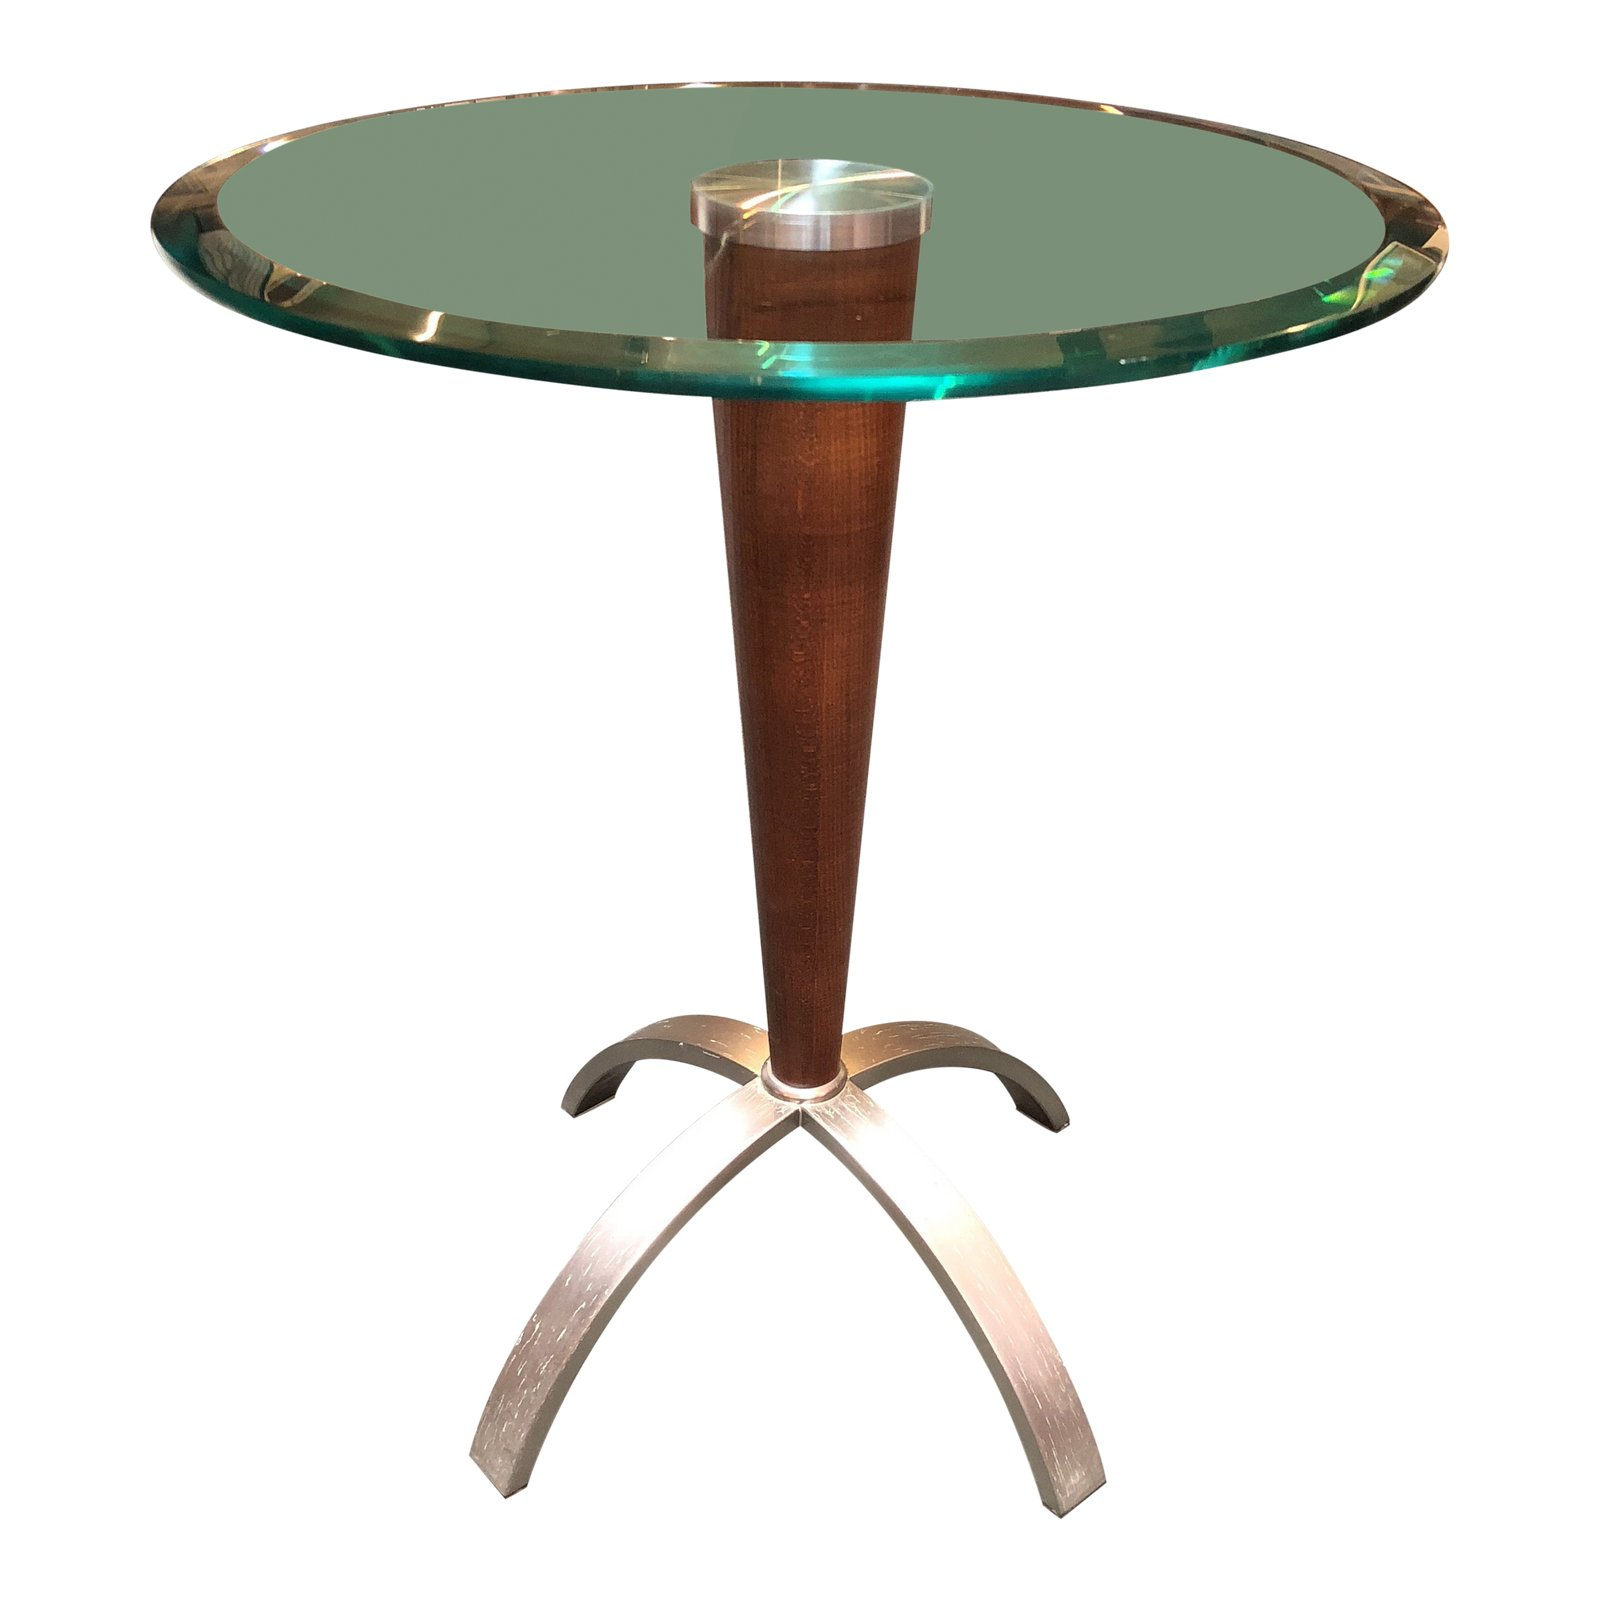 modern tapered wood steel glass top accent side table design and metal west elm small dining green desk lamp ready assembled bedroom furniture nesting coffee tables off code